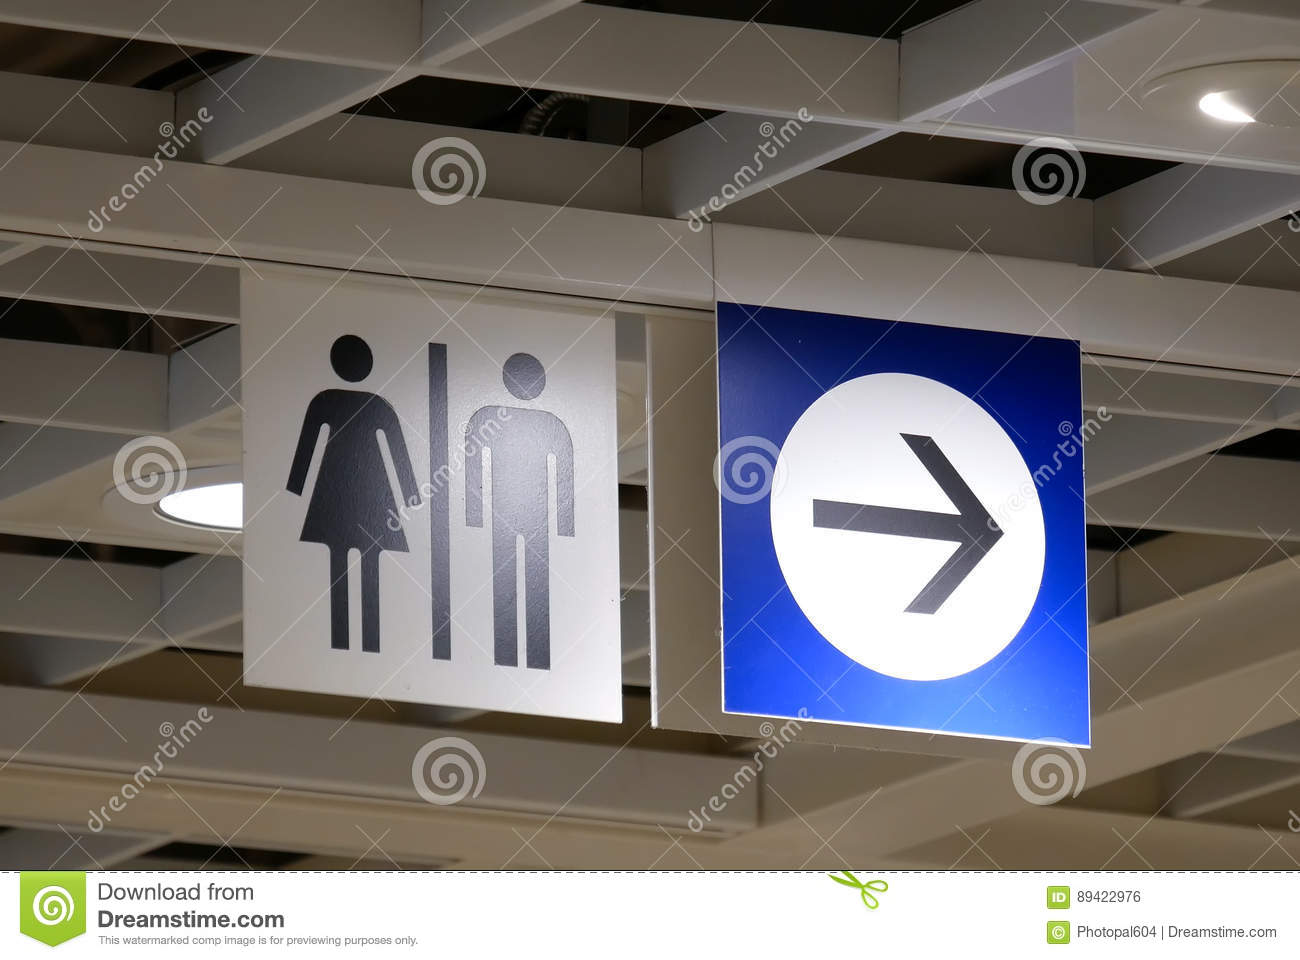 Man woman logo stock images 2 402 photos for What time does ikea close